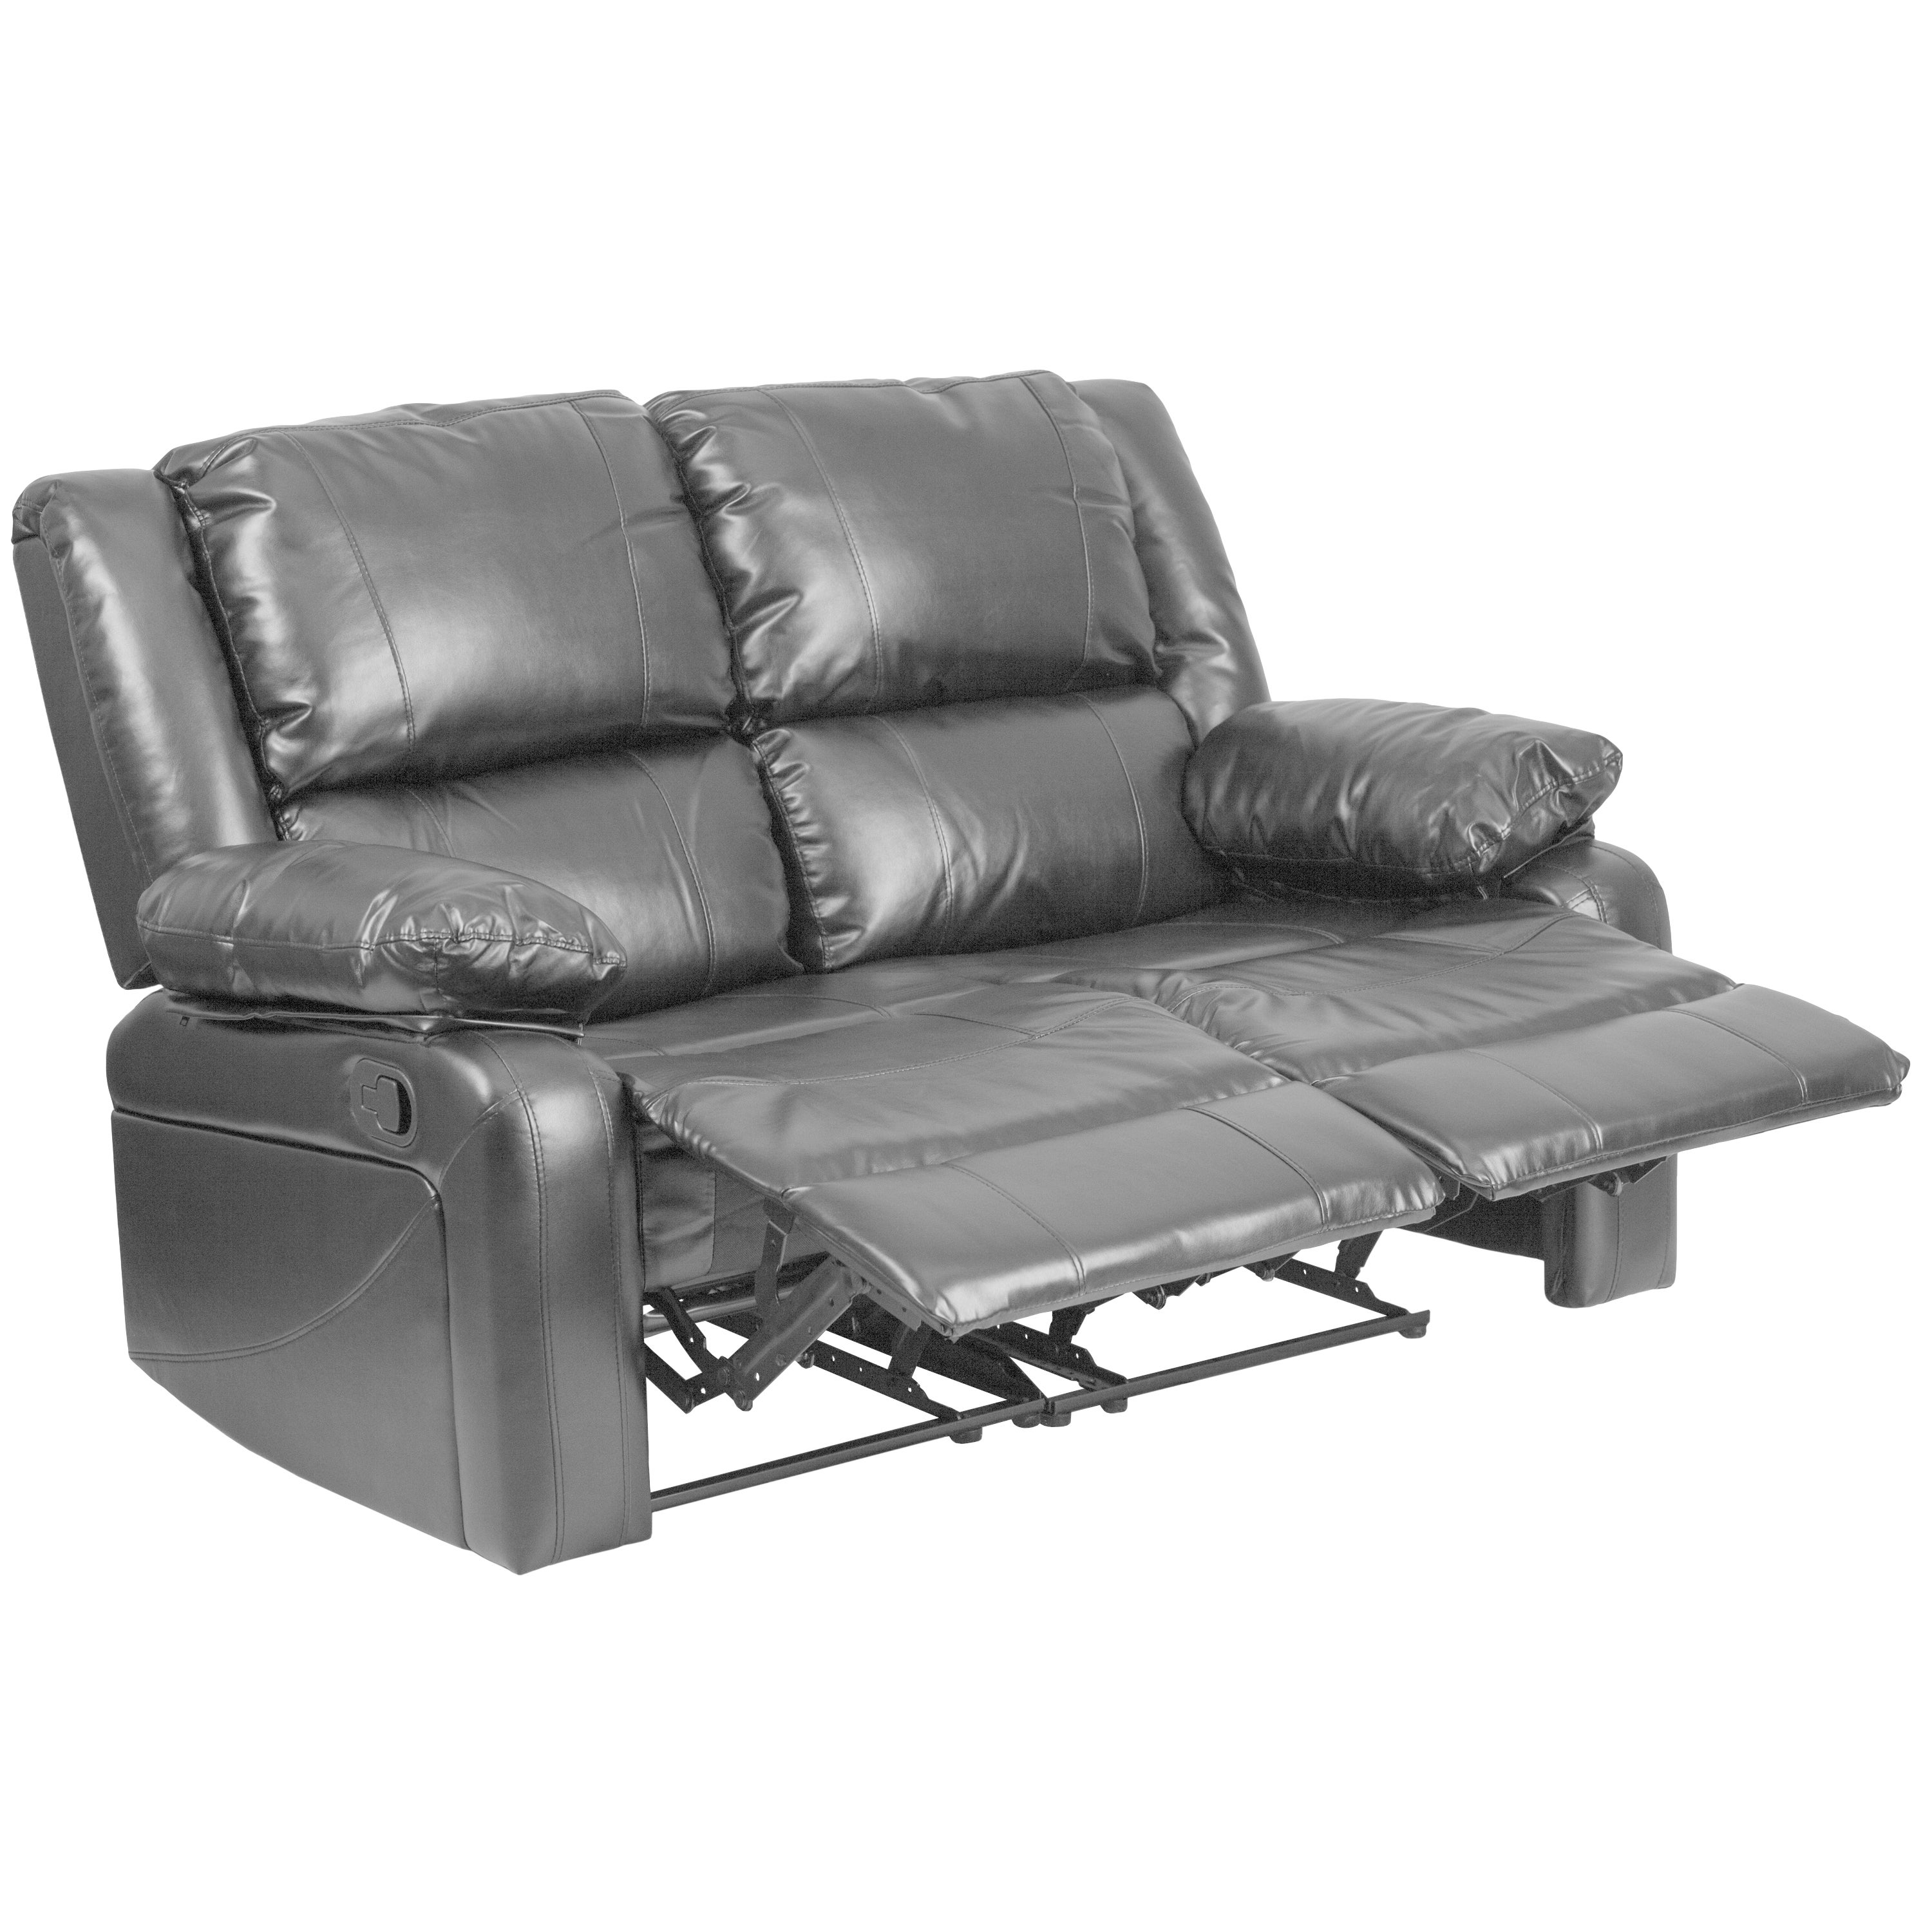 Shop Copper Grove Malheur Leather Loveseat With Two Built In